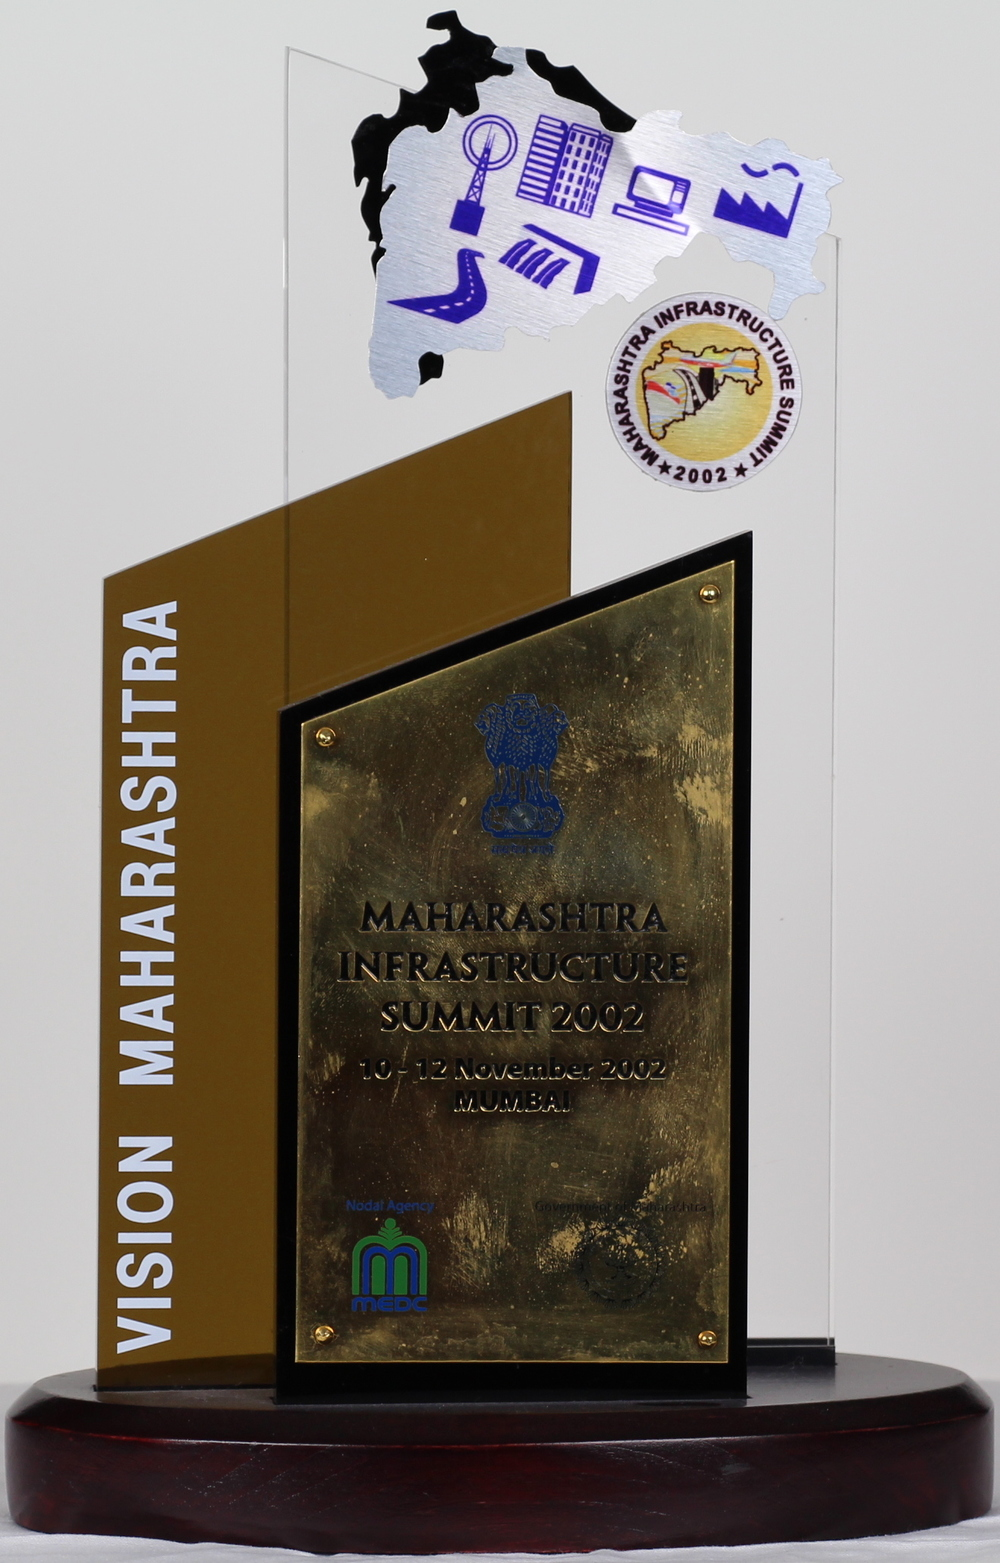 Recognition Award, Vision Maharashtra, Summit 2002, Mumbai